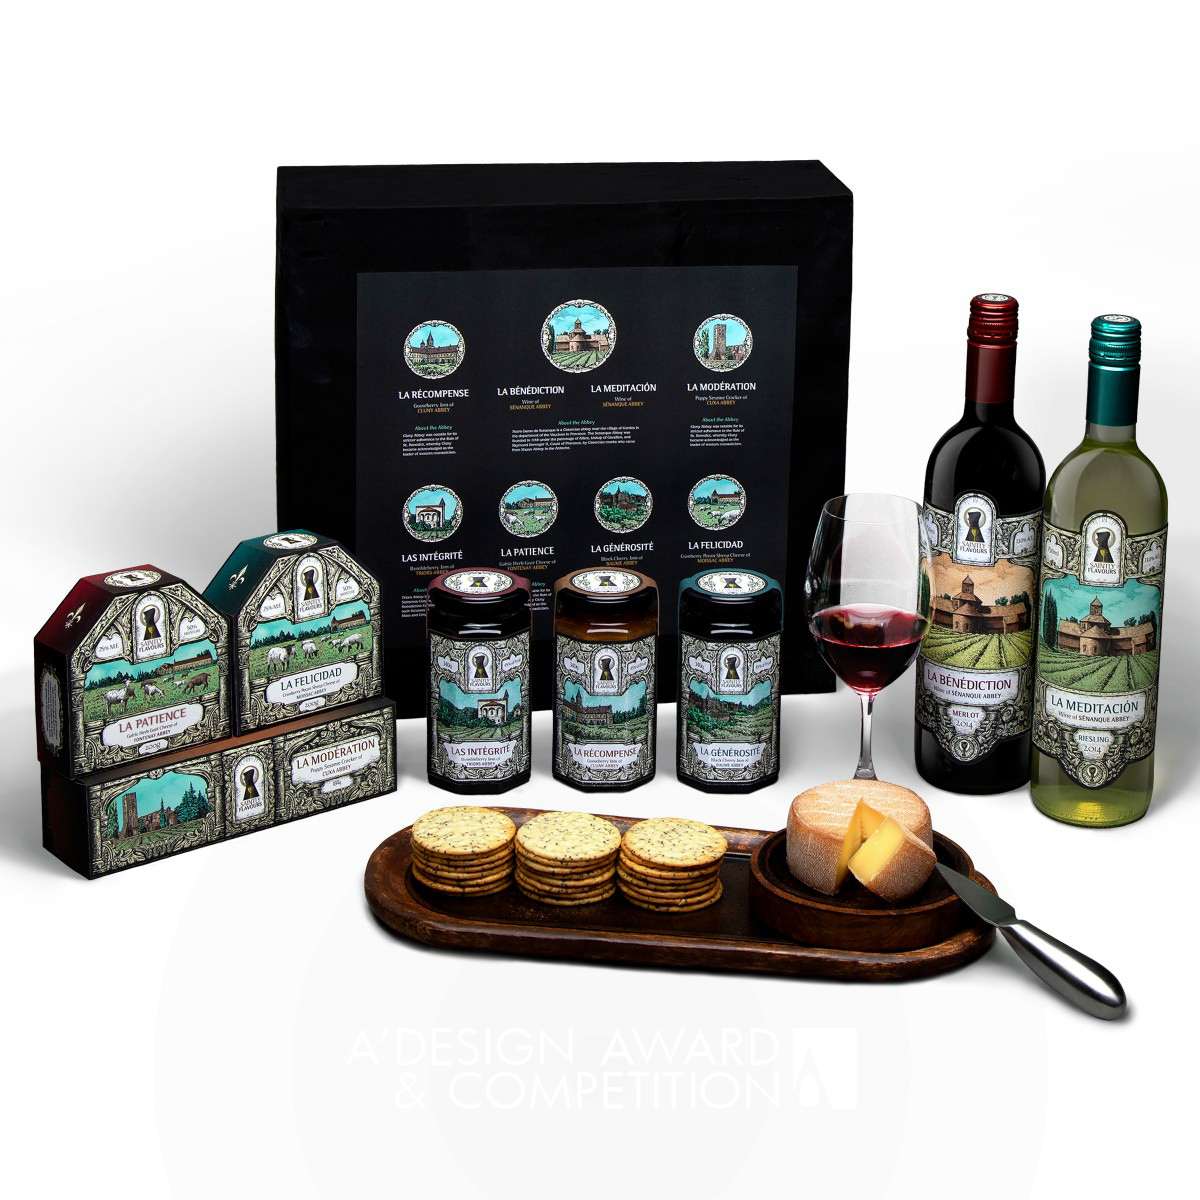 Saintly Flavours Gourmet Food Gift Set